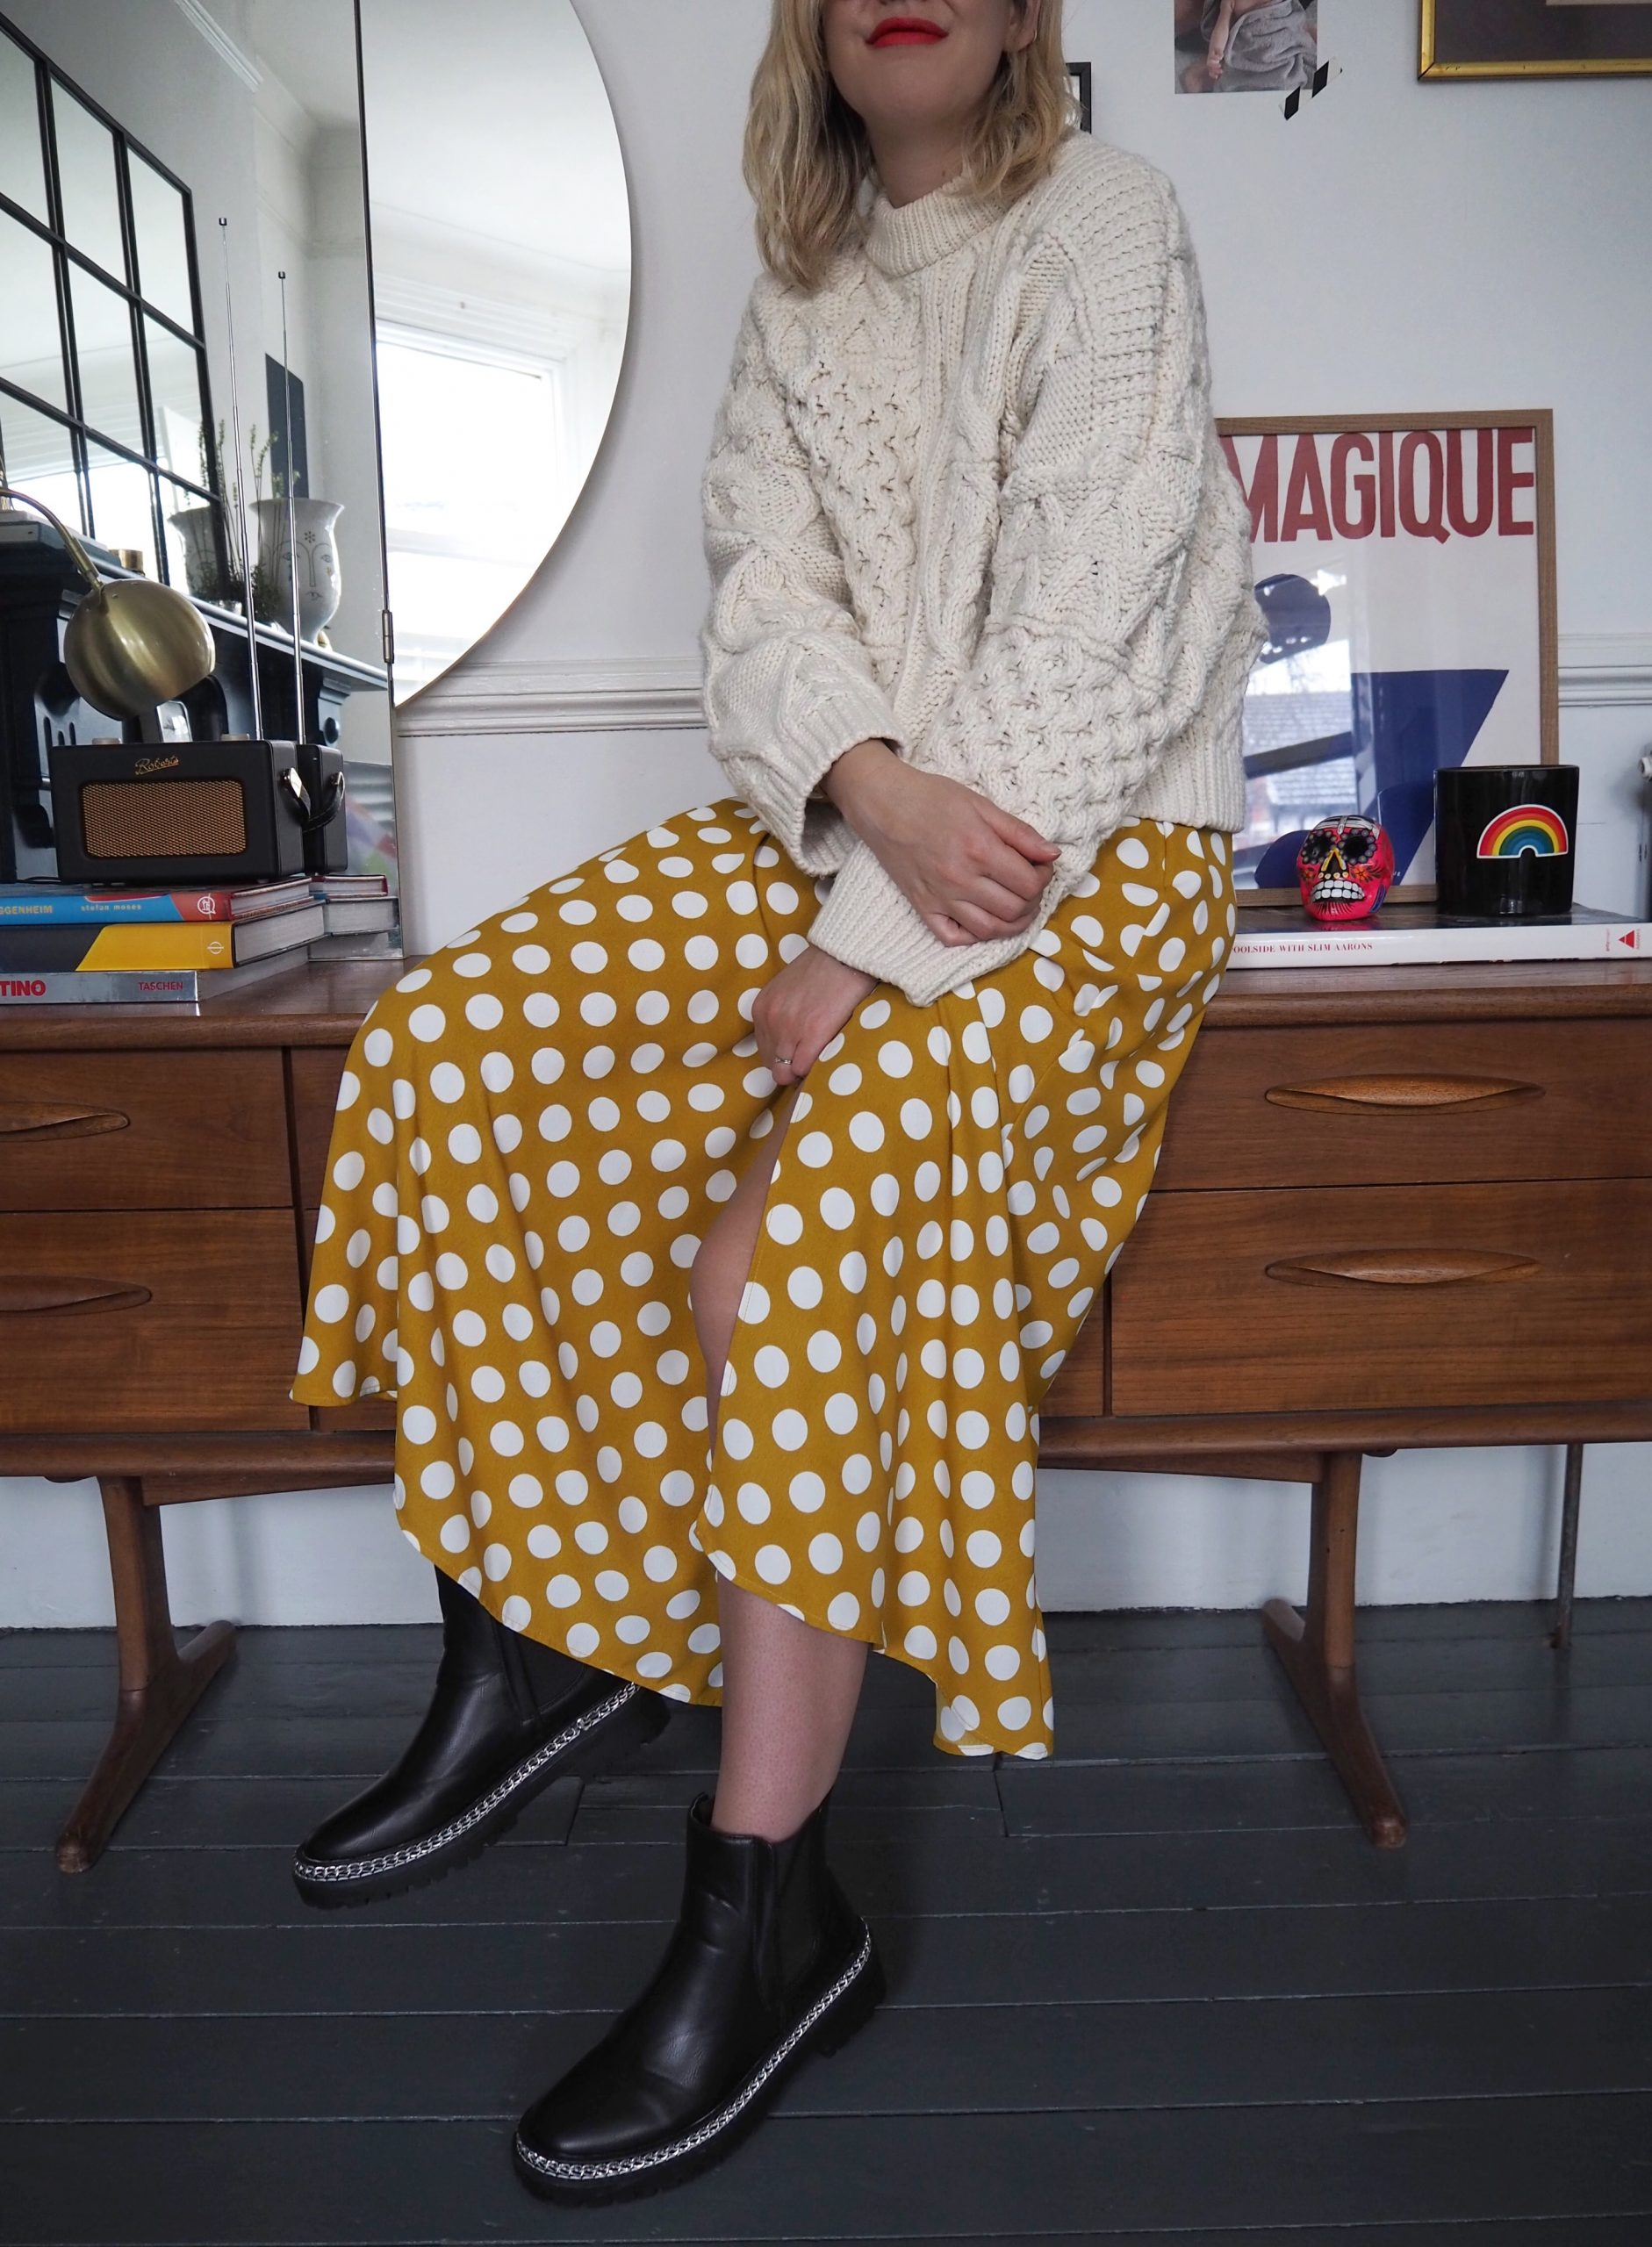 Alex Stedman of The Frugality wearing a yellow white polka dot Topshop dress. Styled with a white chunky knitwear jumper from H&M and black chunky studded boots from Very.